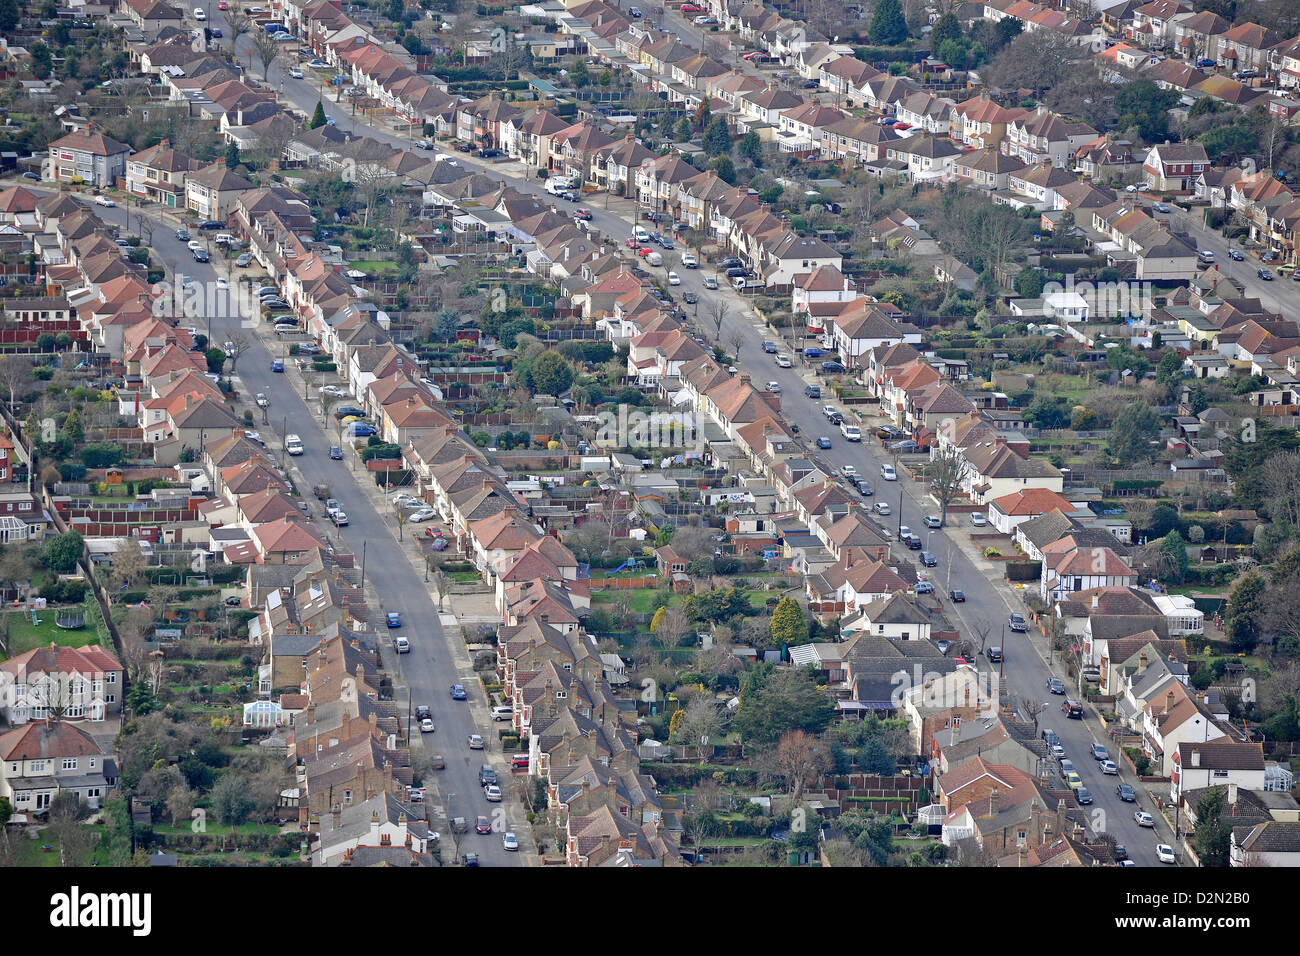 Aerial Photograph of Suburban Housing in the UK - Stock Image